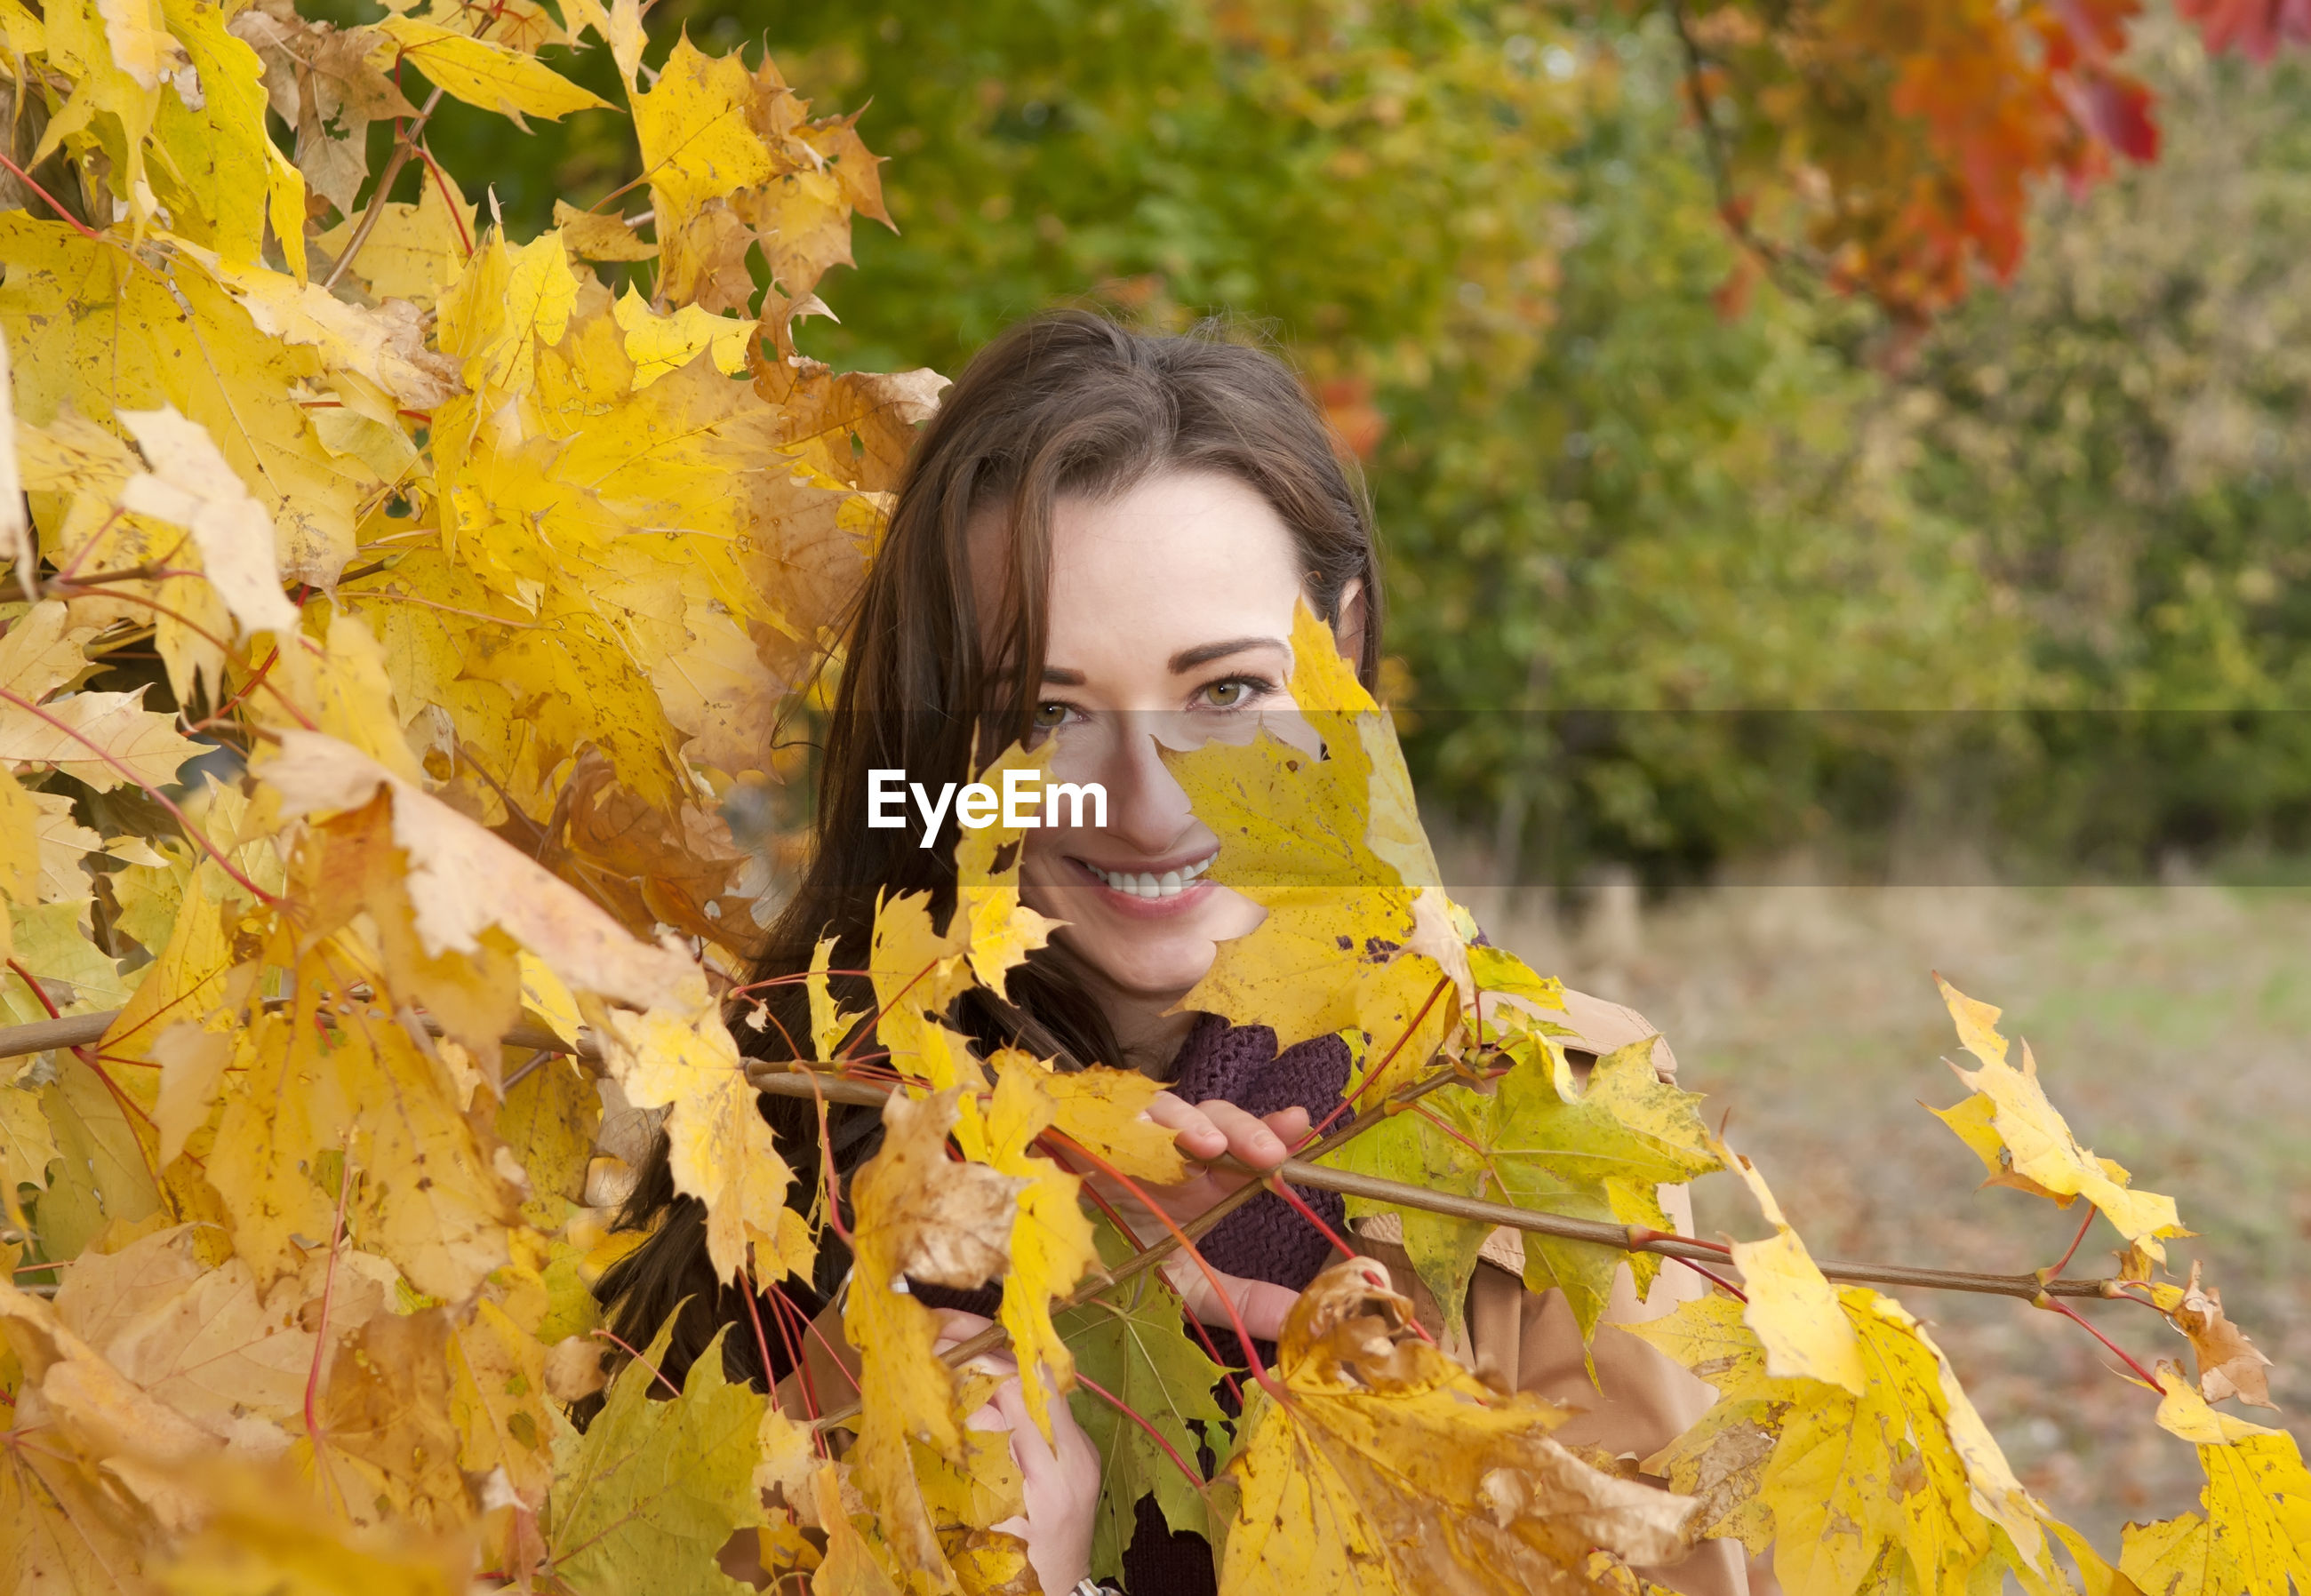 Portrait of woman wearing coat standing by trees in park during autumn